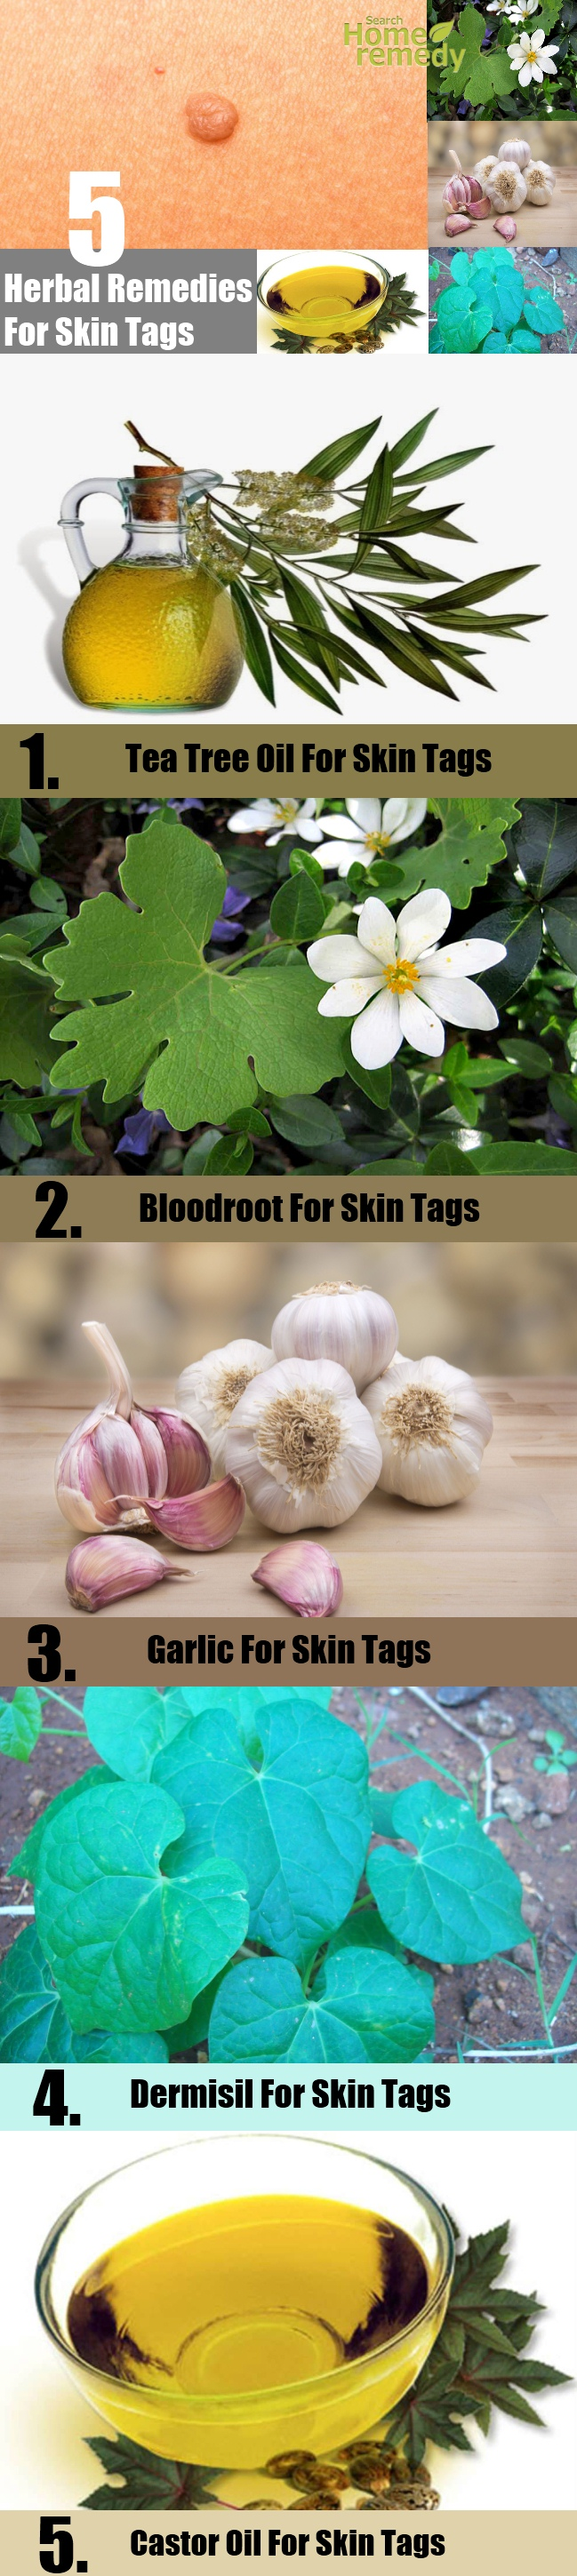 5 Best Herbal Remedies For Skin Tags